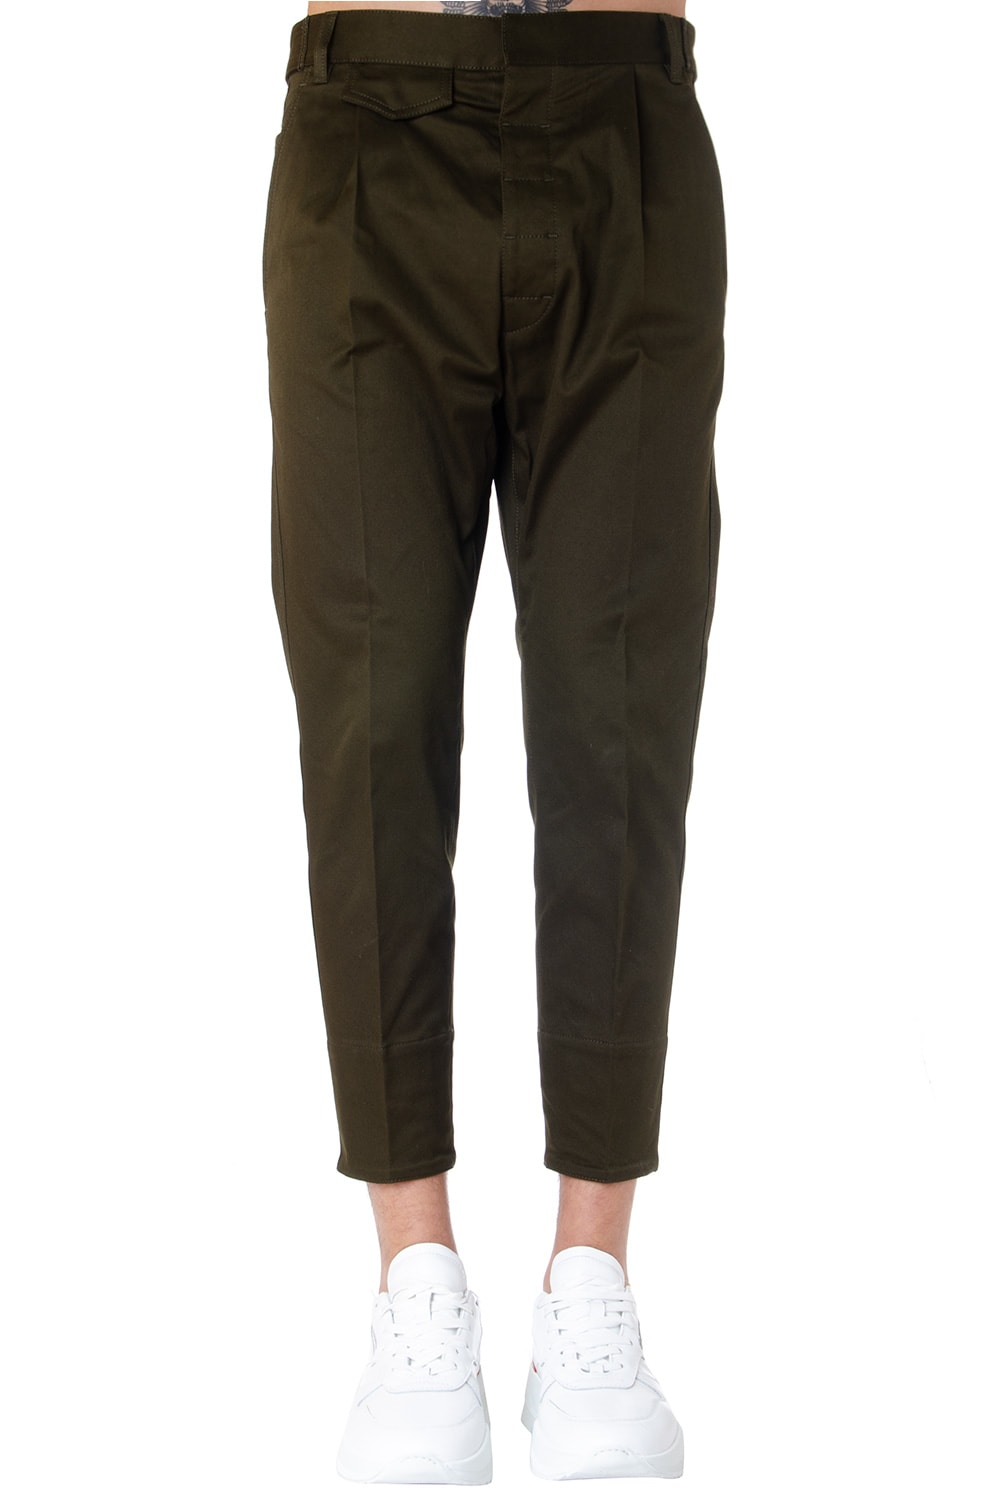 Dsquared2 Green Cotton Cropped Pants